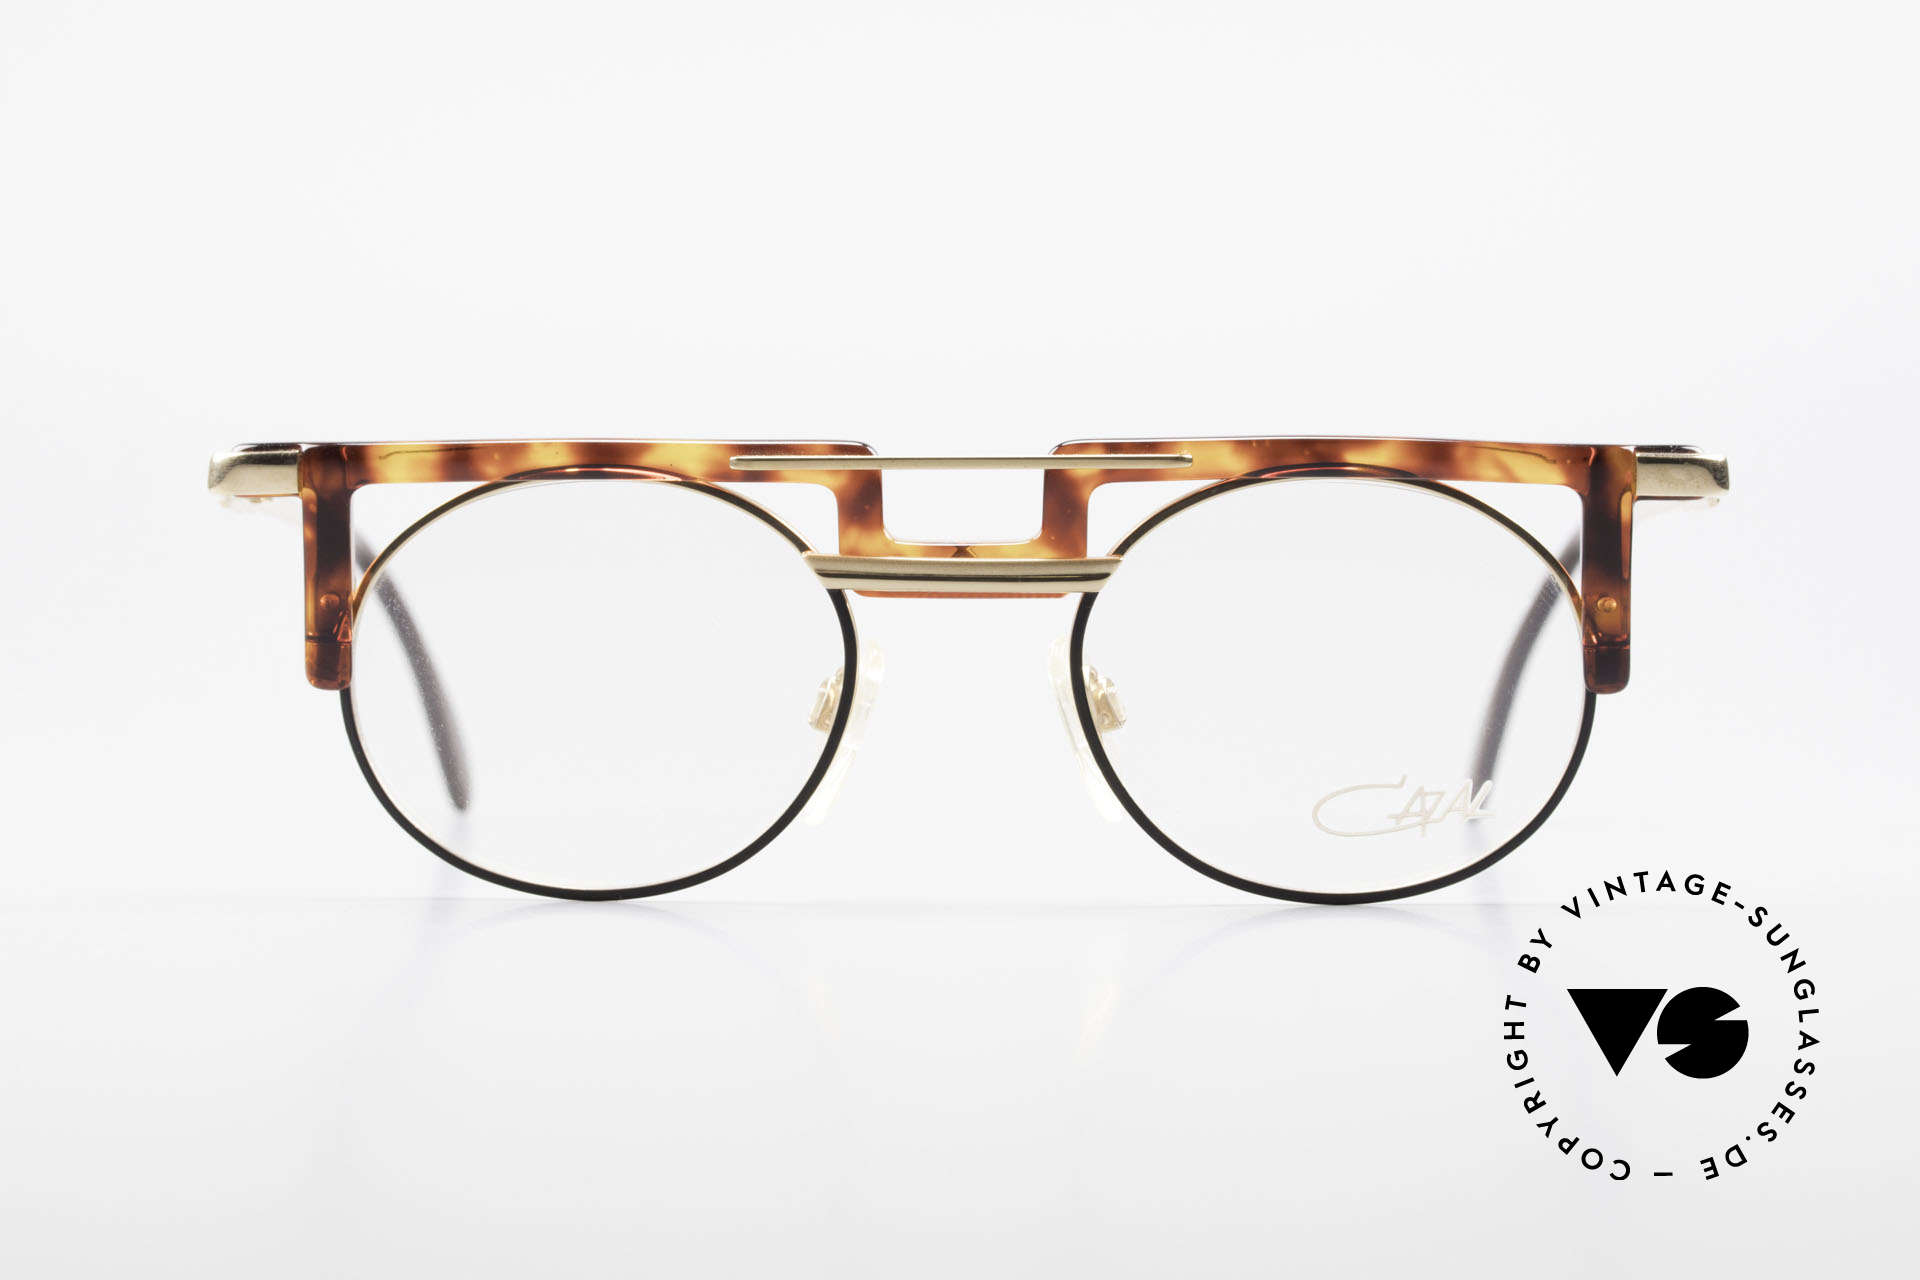 Cazal 745 Old Cazal 90's Eyeglass-Frame, great combination of shapes, colors & materials, Made for Men and Women